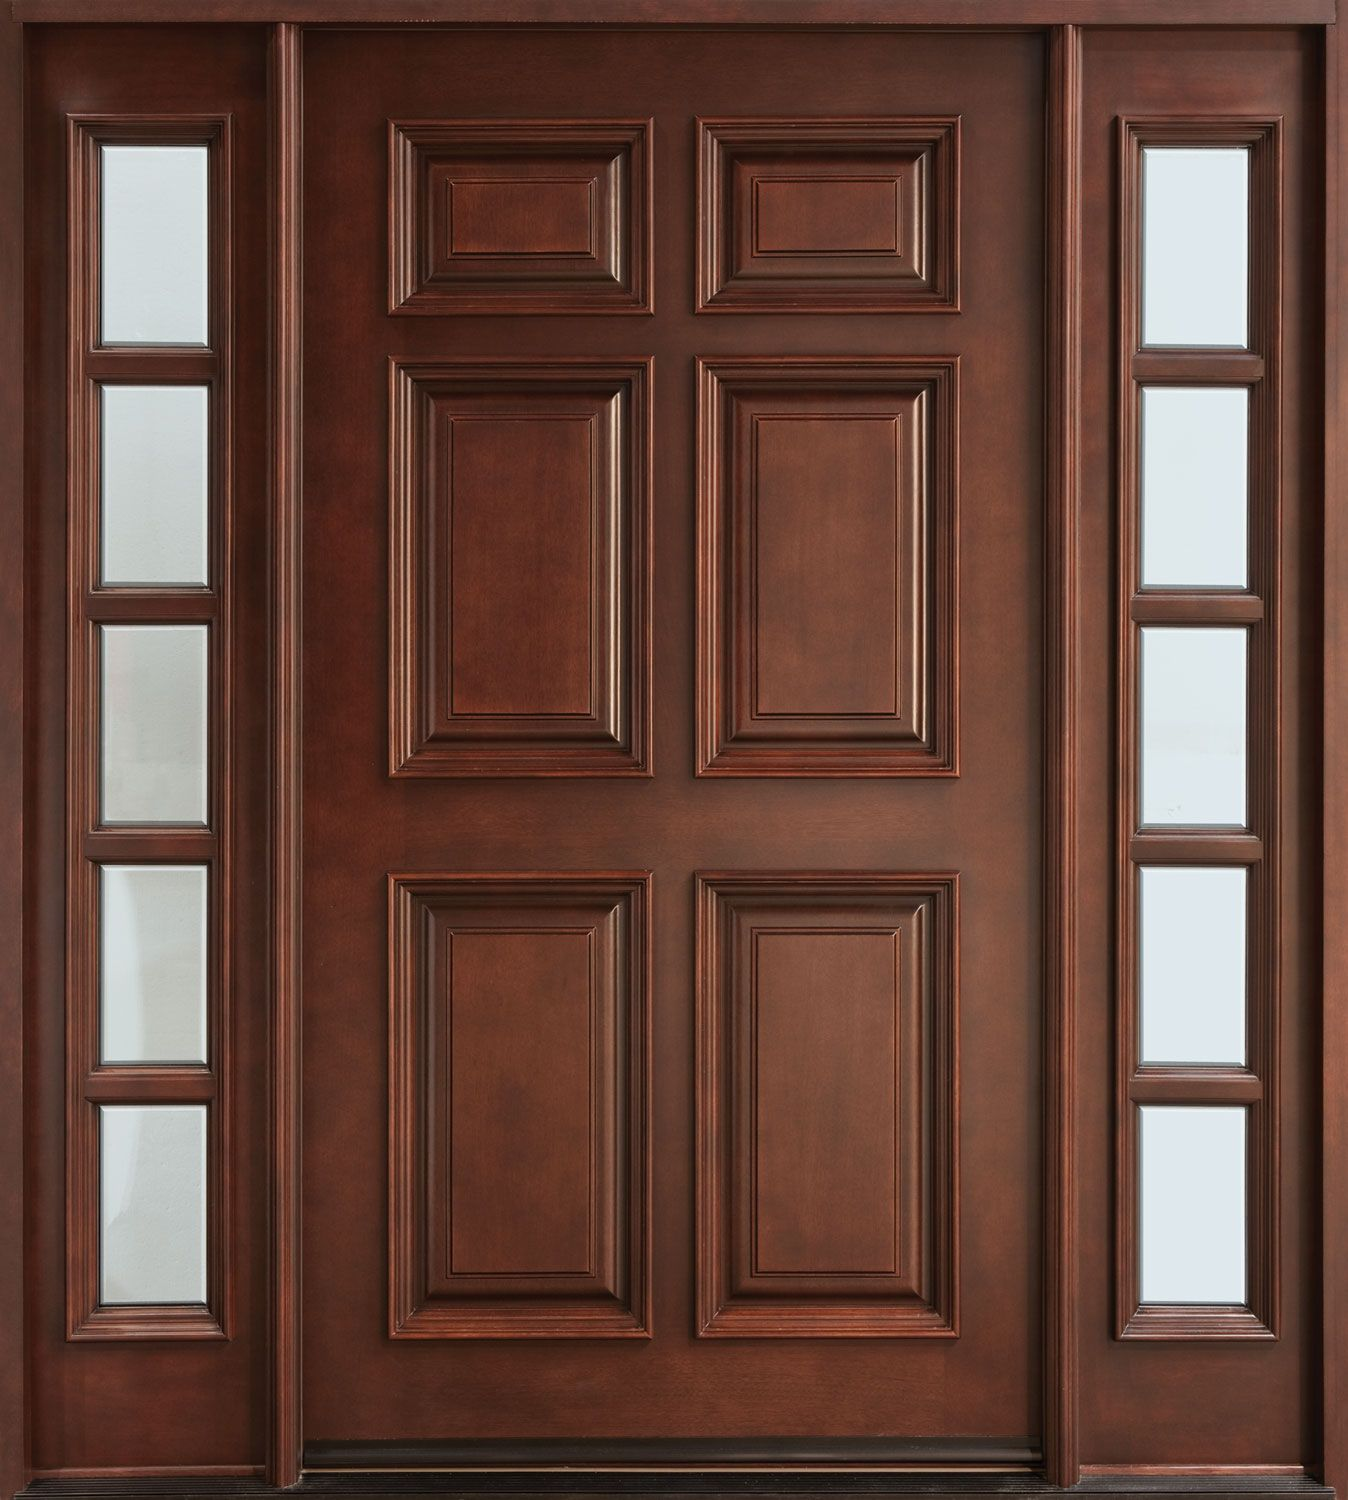 Ordinary Wood Doors Designs Gallery